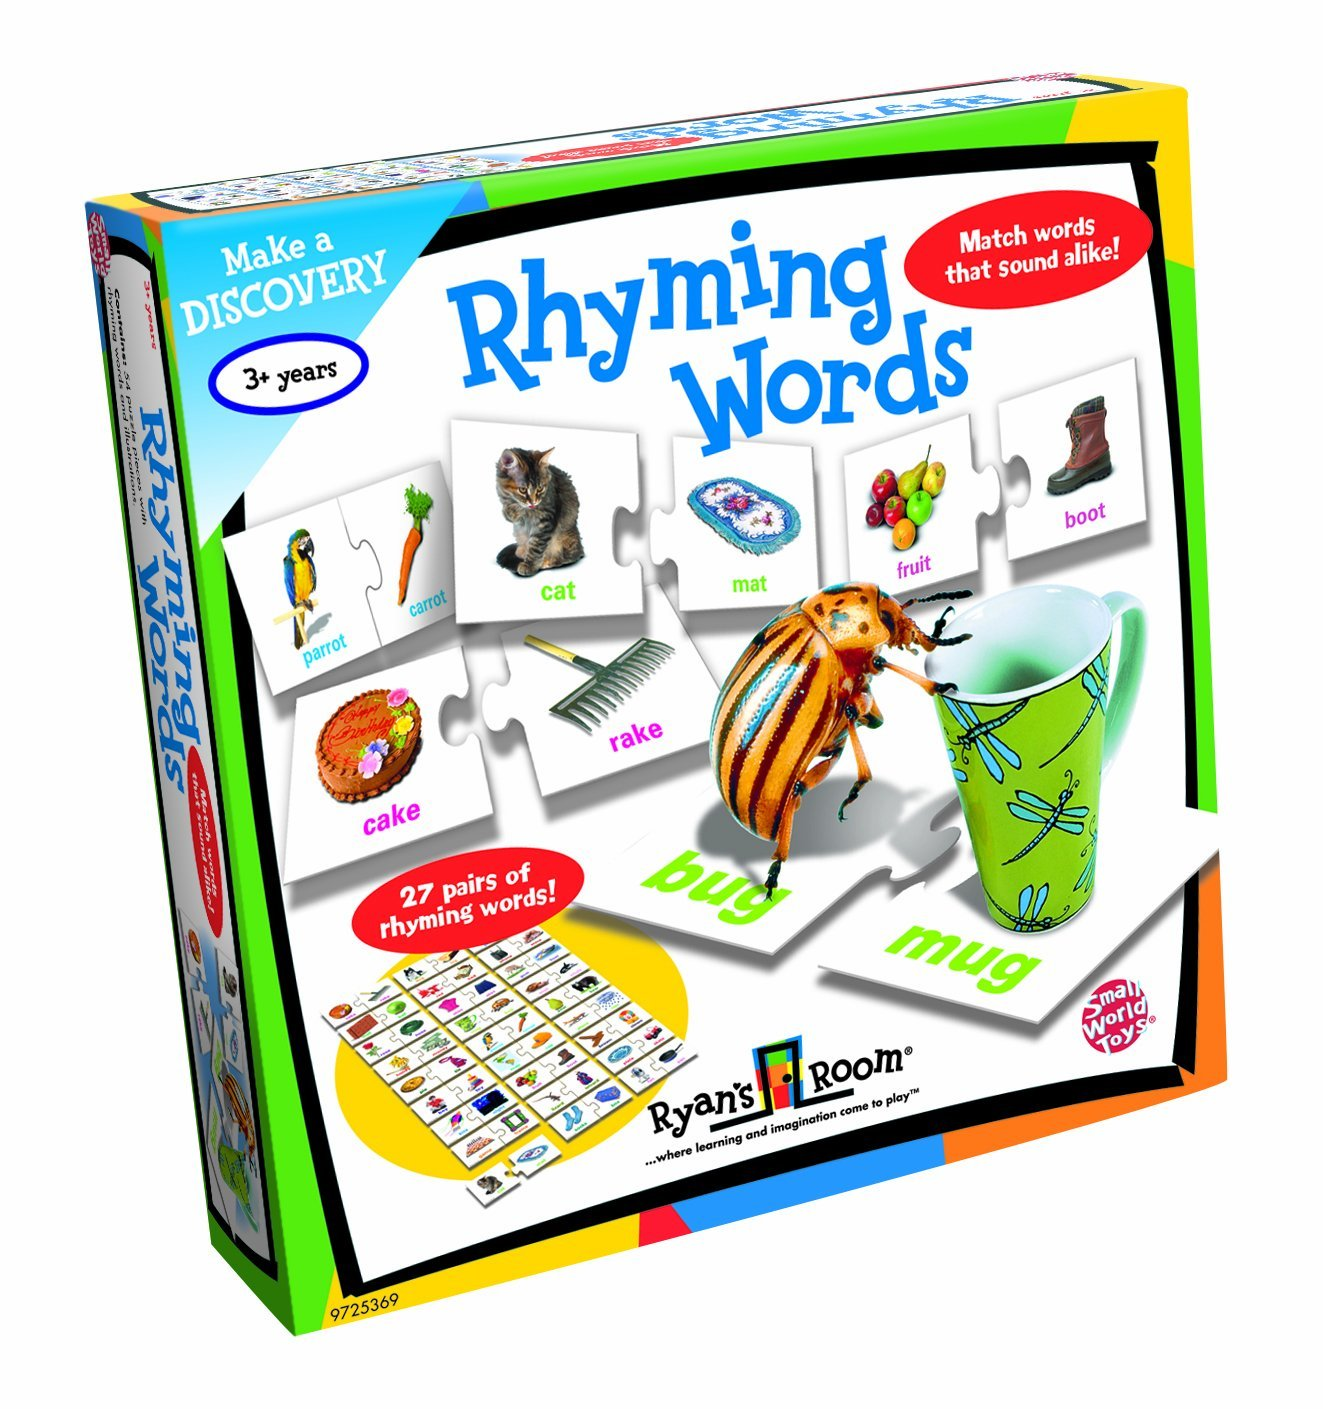 Learning - Rhyming Words, Do these words rhyme? Find out ...